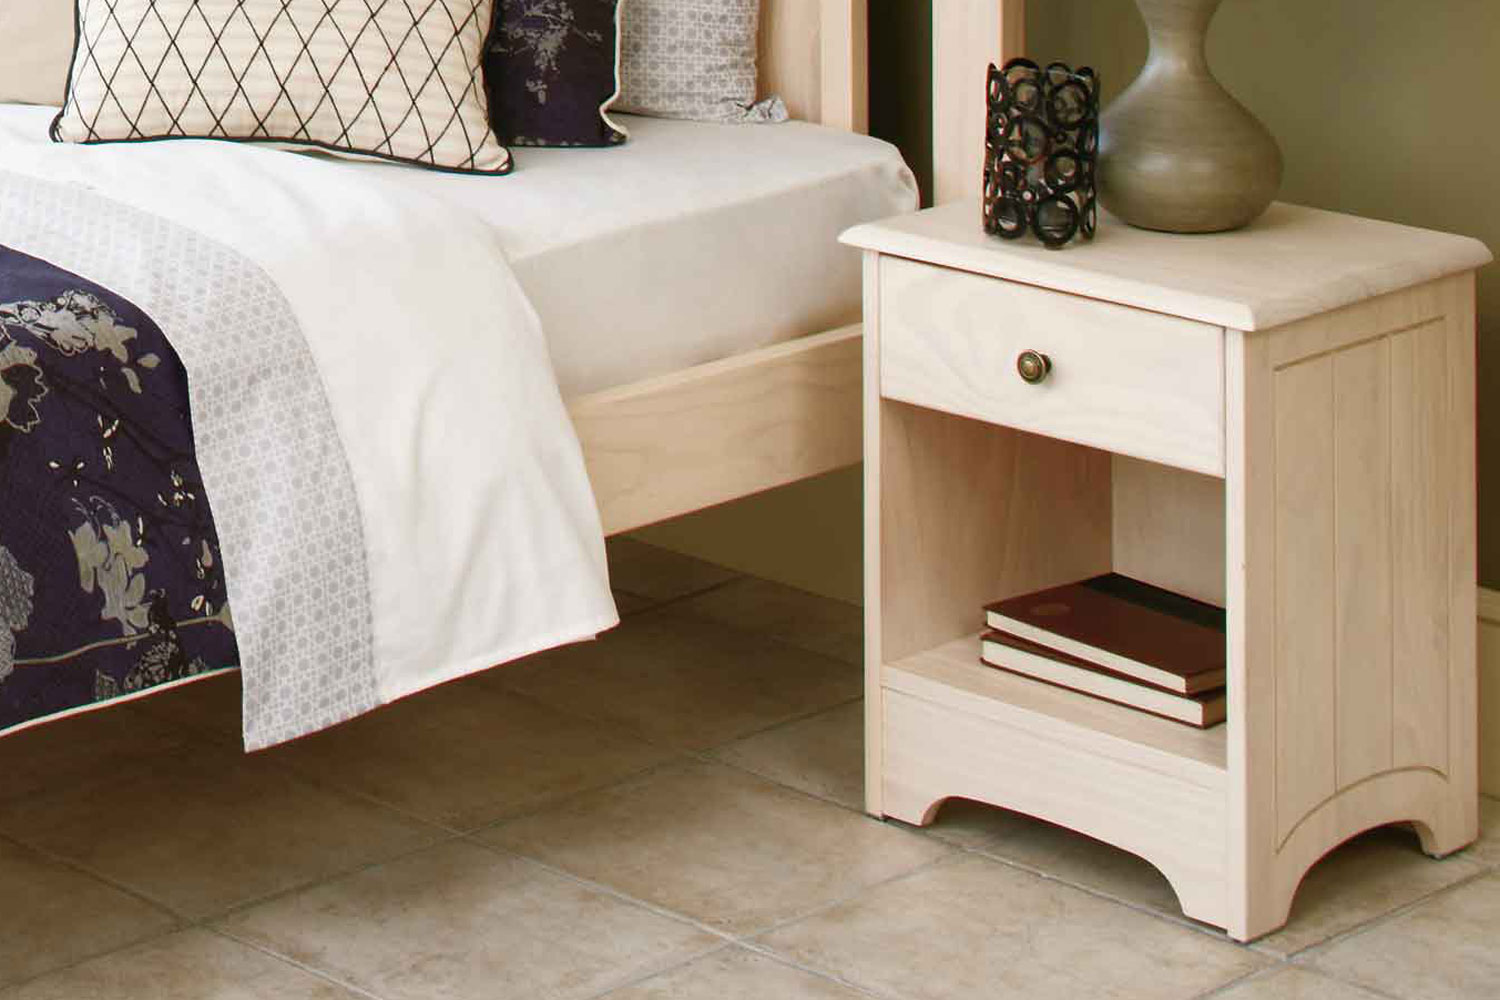 Calais 1 Drawer Bedside Table By Coastwood White Wash